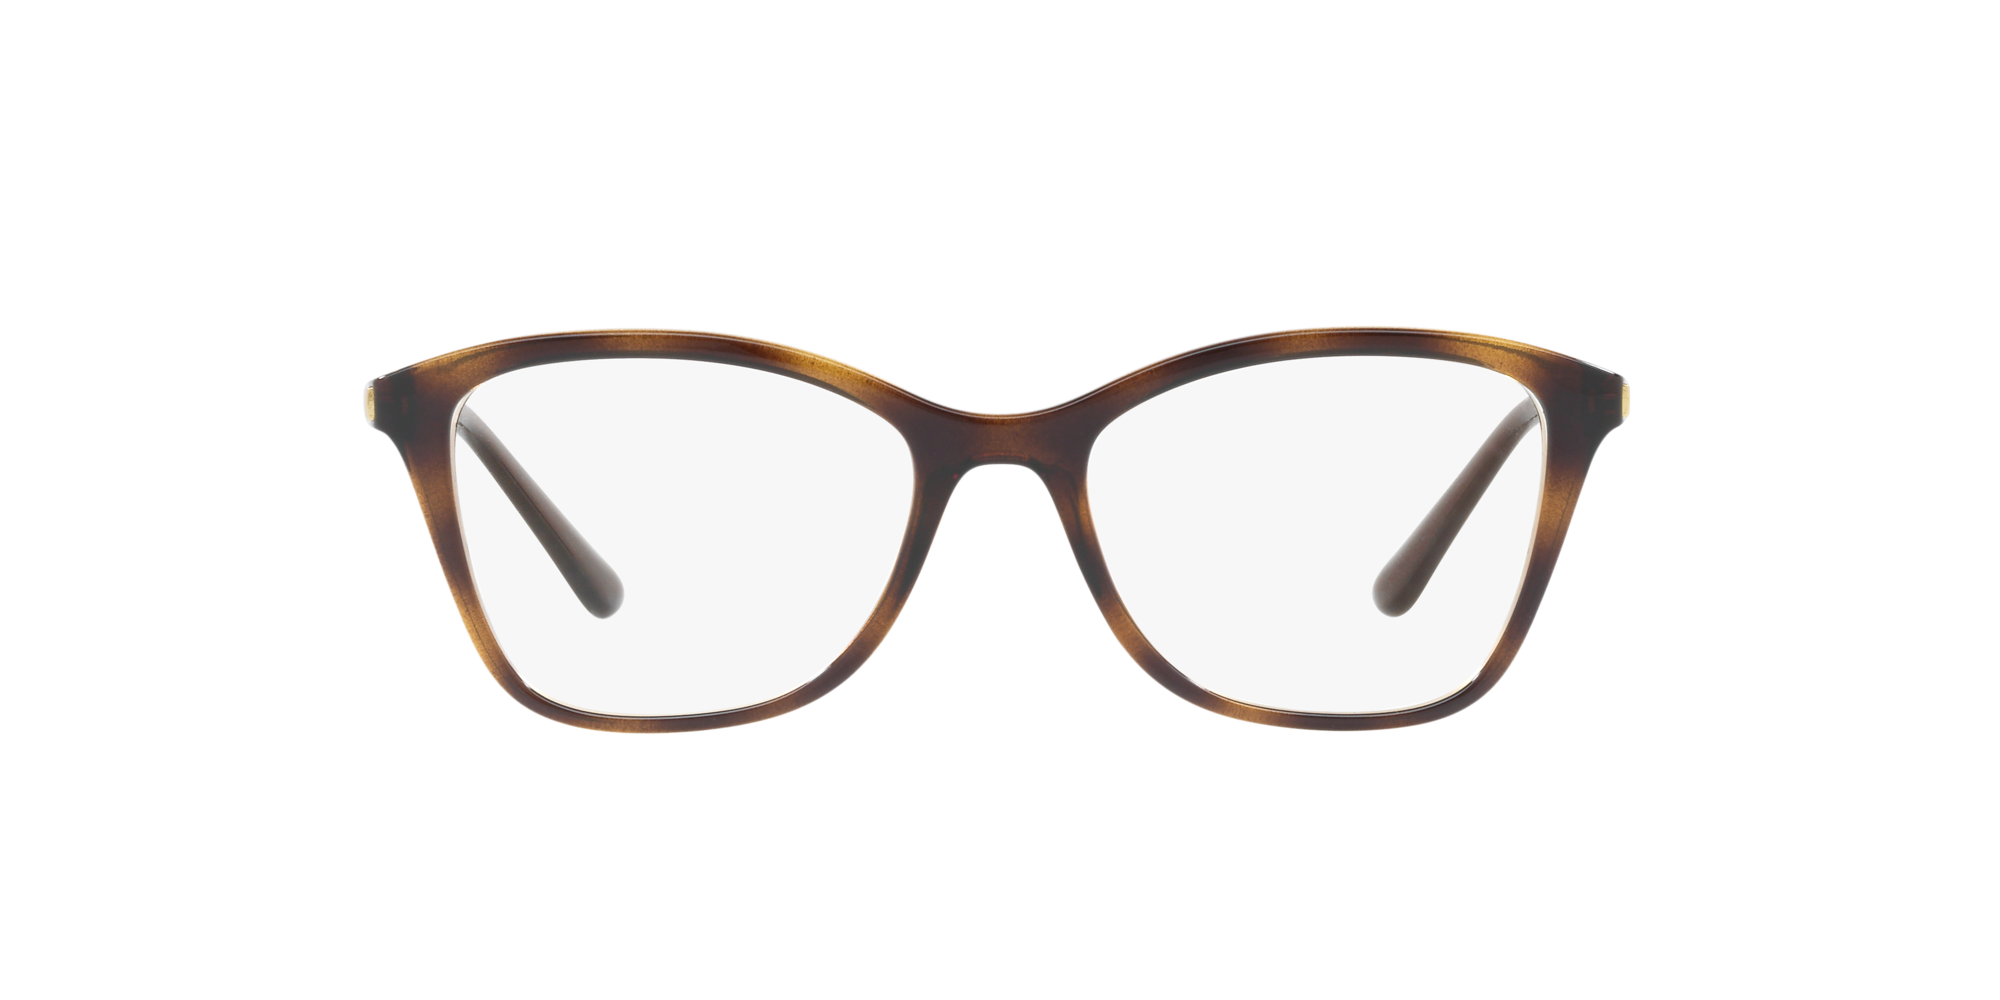 Image for VO5152 from LensCrafters   Glasses, Prescription Glasses Online, Eyewear